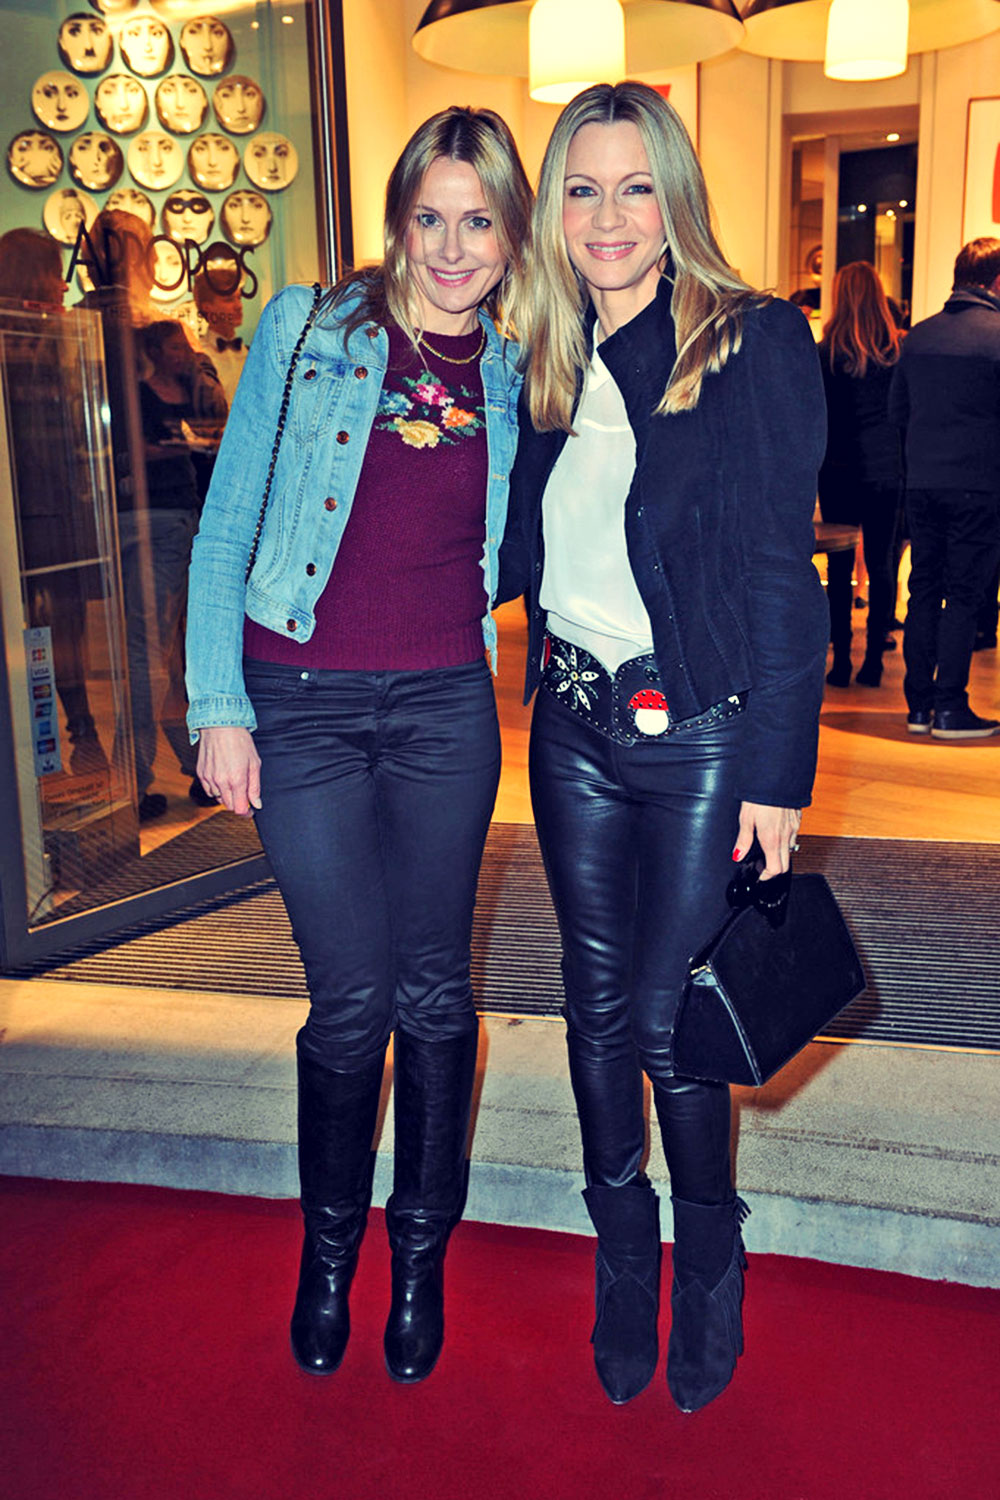 Verena Klein and Petra Winter attend Apropos Concept Store Opening